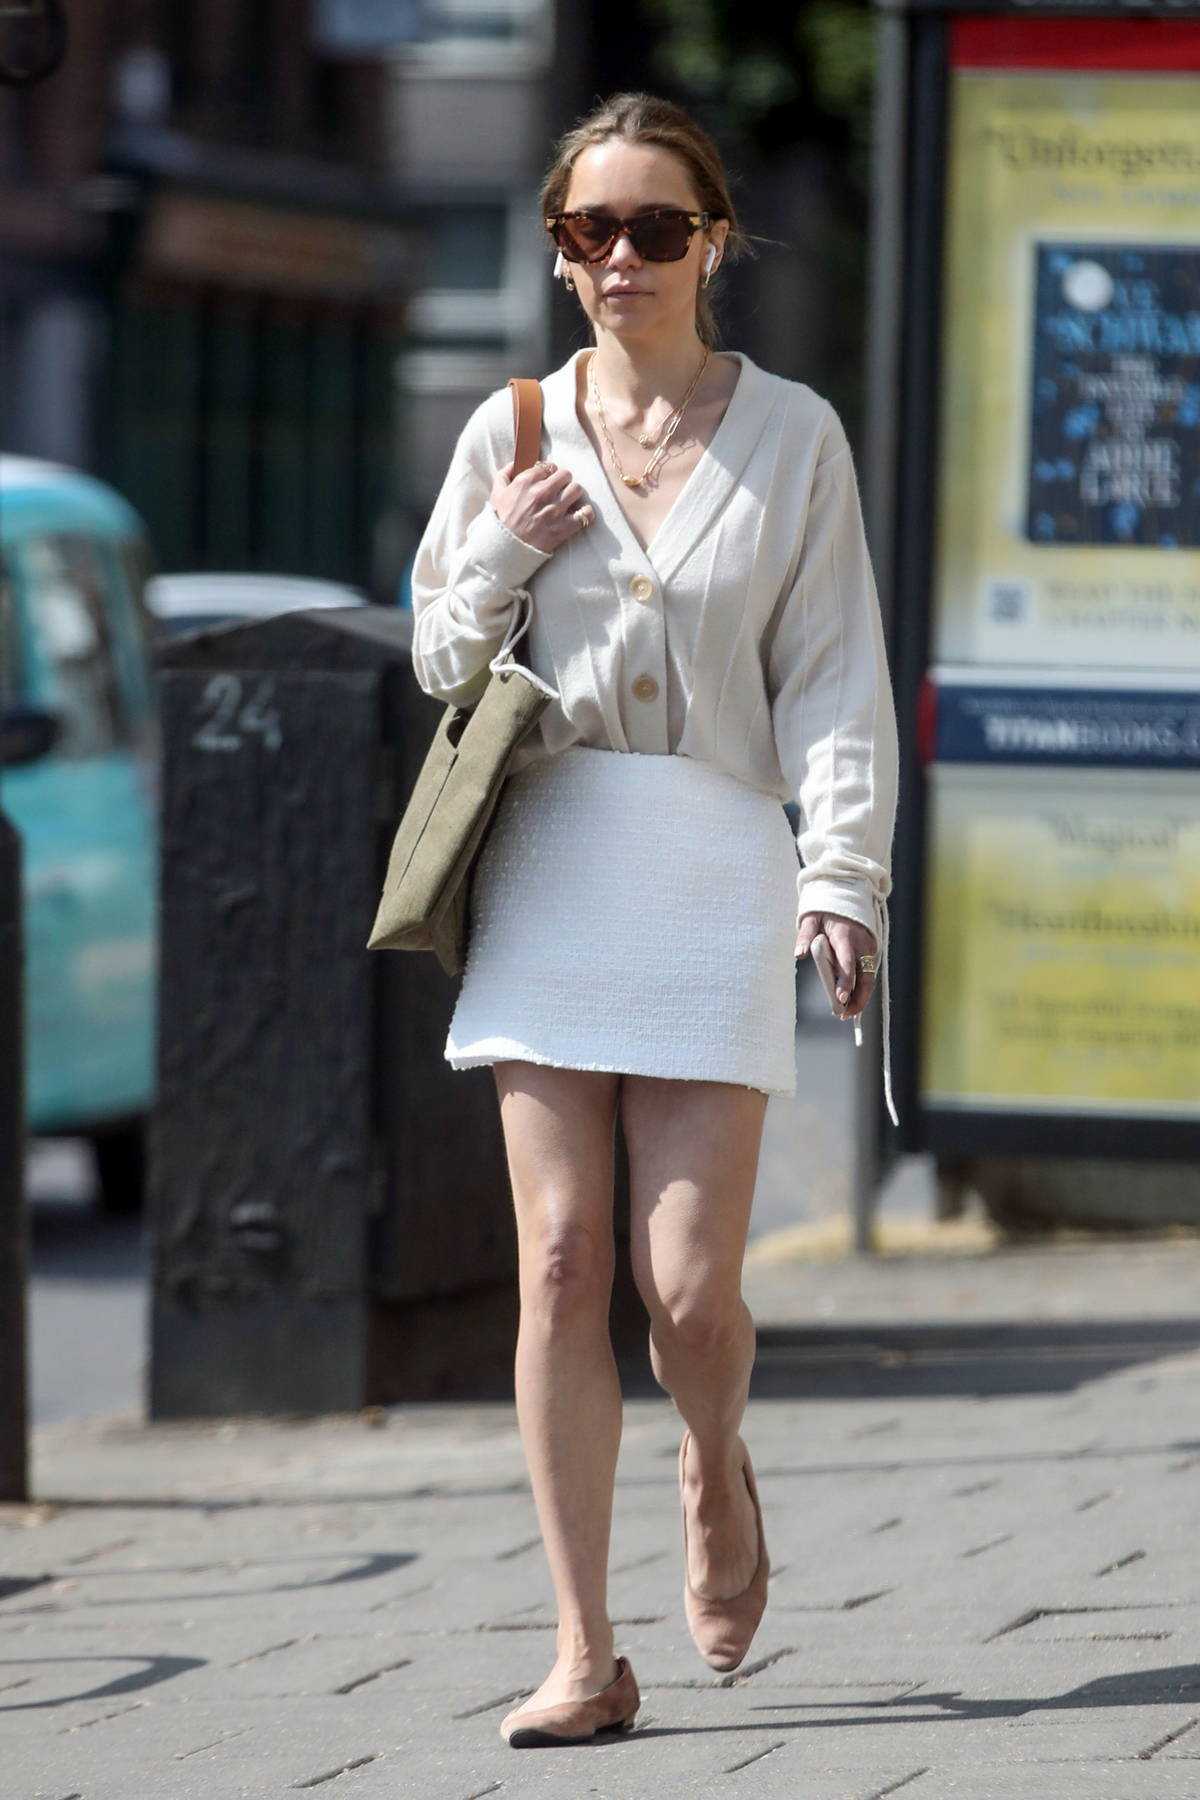 Emilia Clarke gets leggy in a white mini skirt while out for some shopping in London, UK